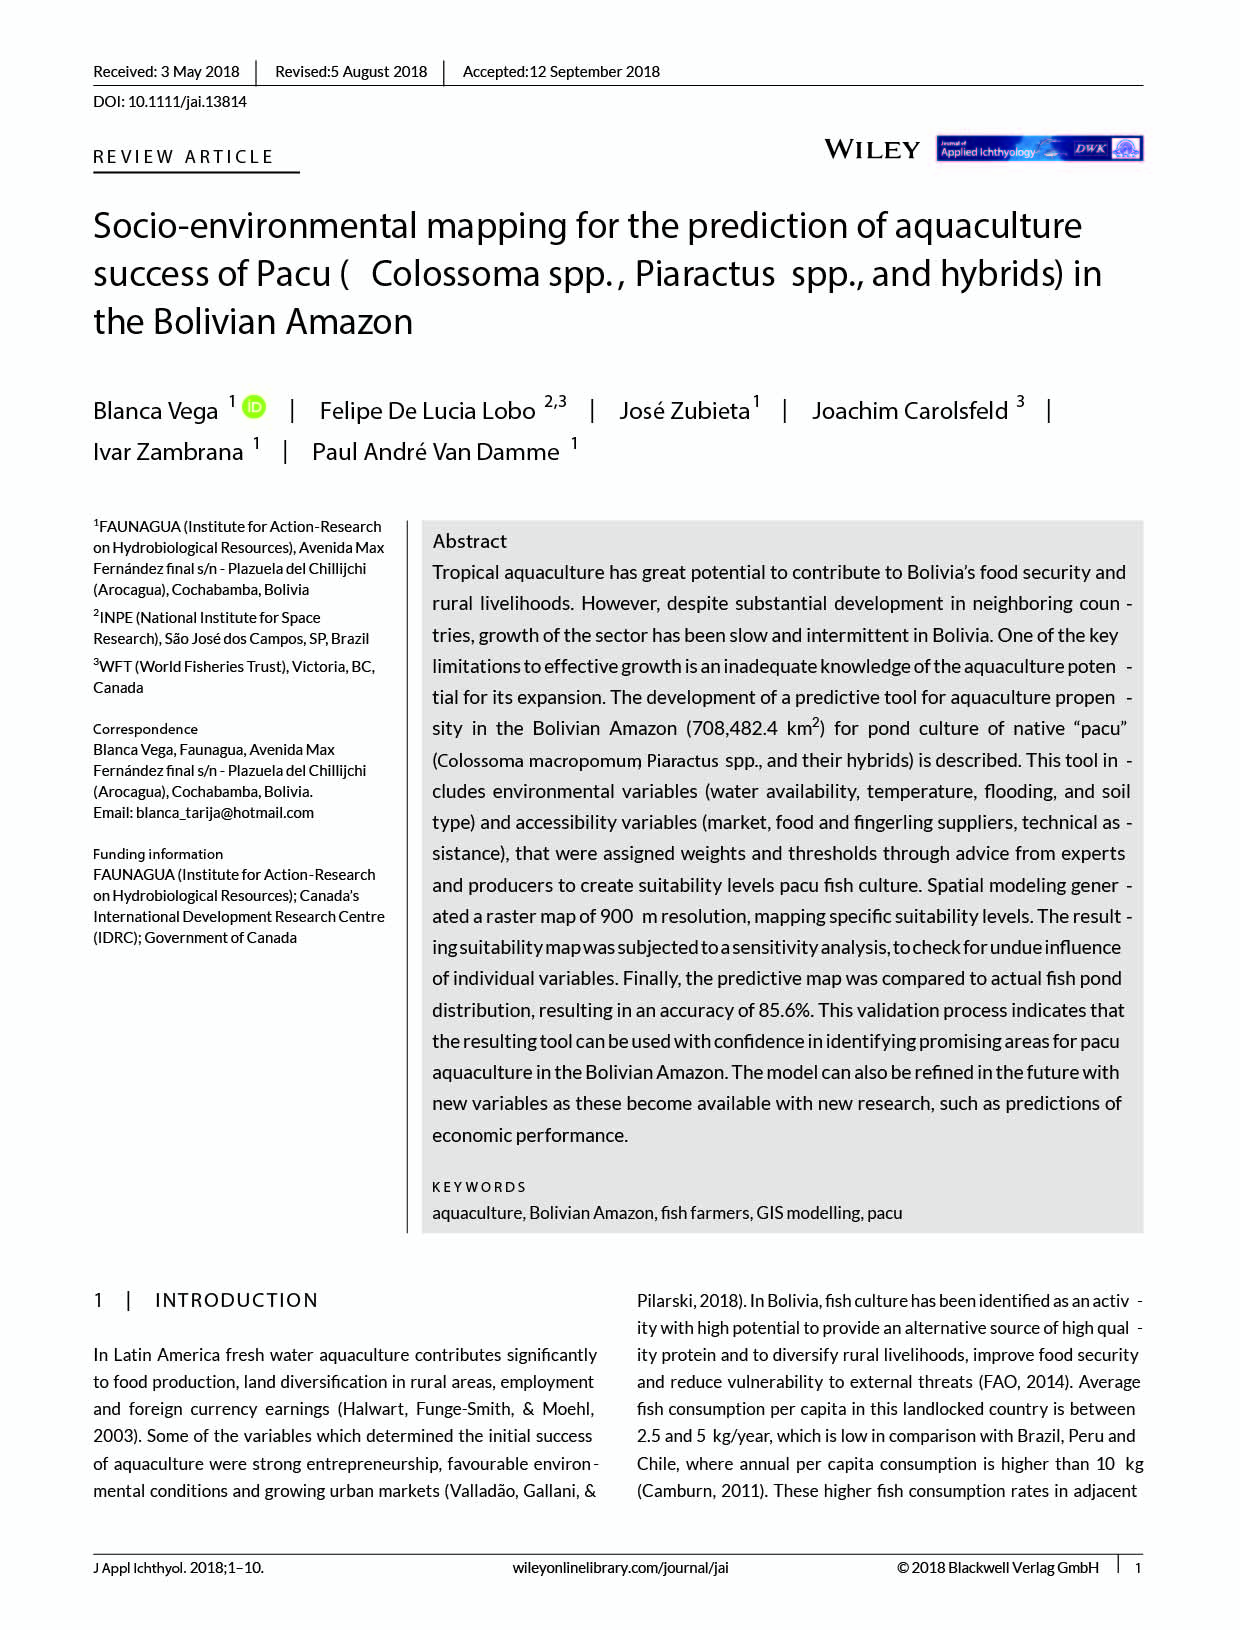 Vega_2018_Mapping aquaculture pacu Bolivian Amazon_JournalAppliedIchthyology_tapa